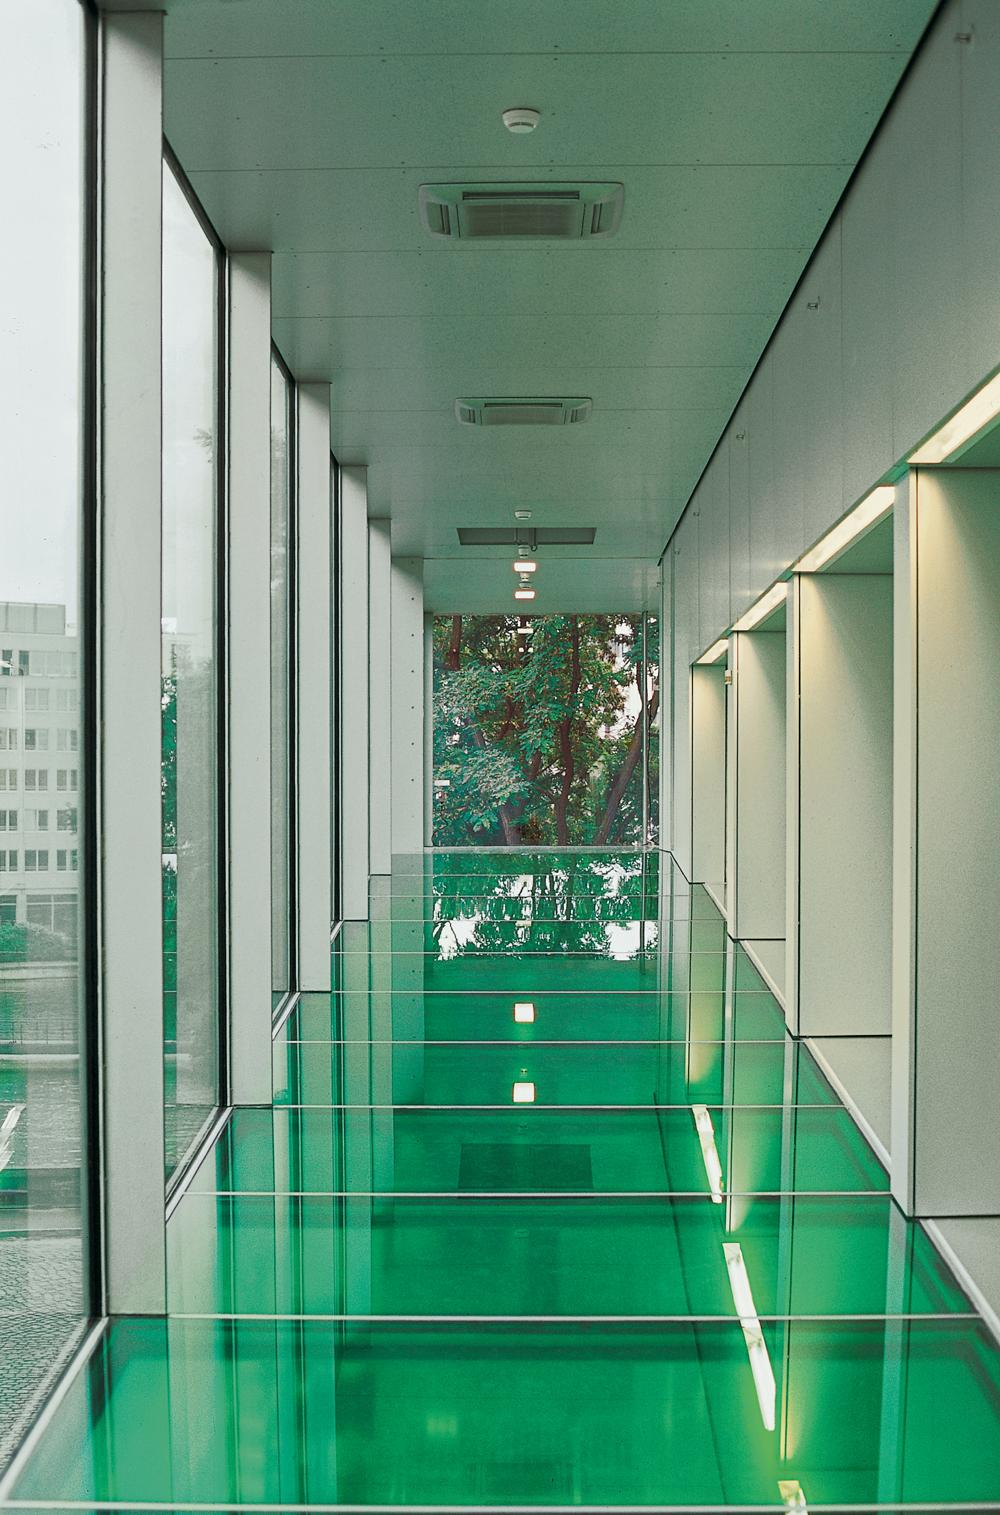 The cantilevered walkway as seen from inside (Source: Office for Metropolitan Architecture)